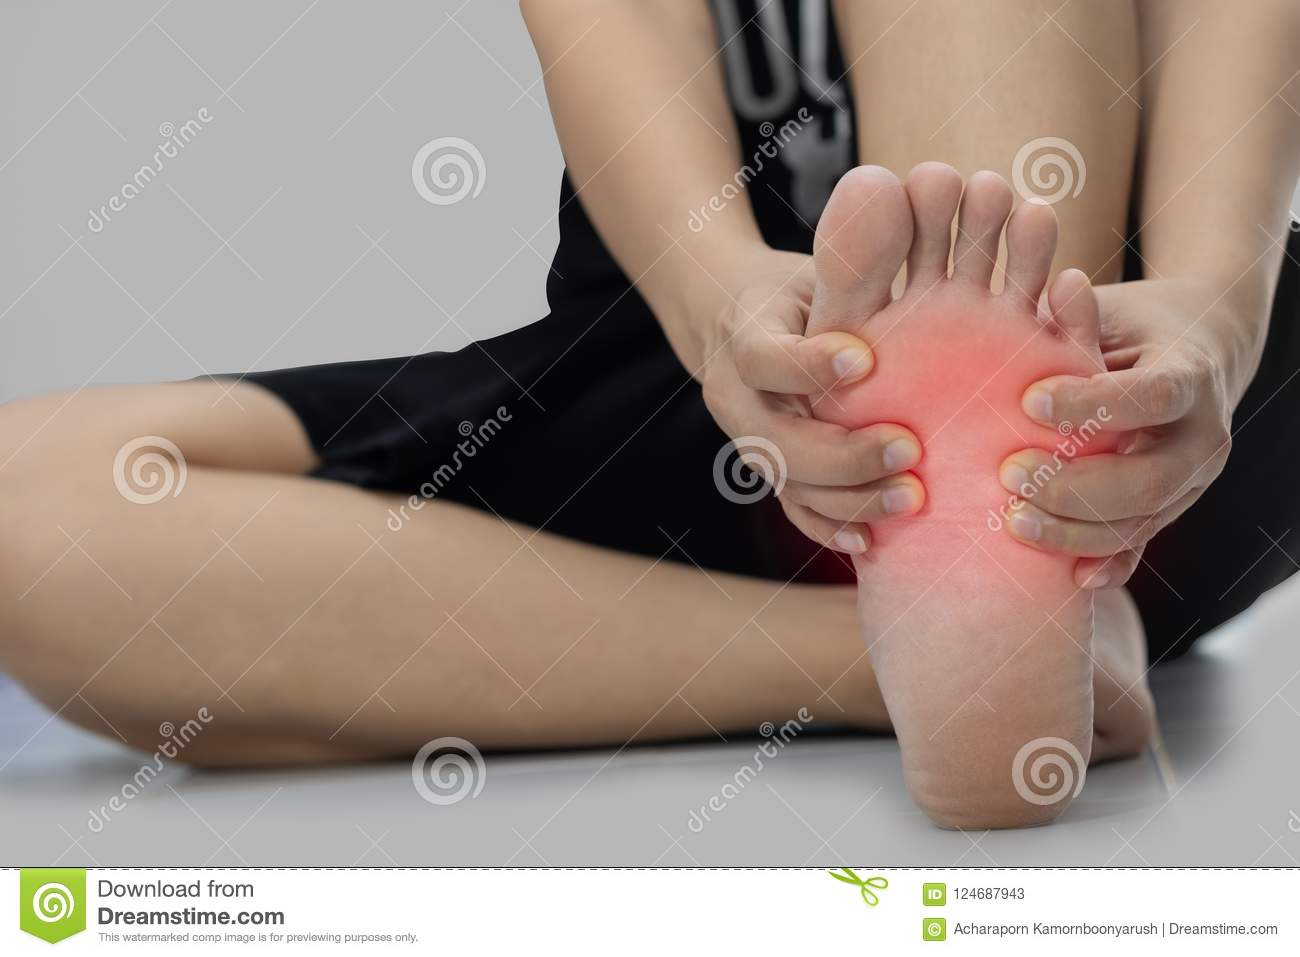 girl-pressure-on-anus-pain-in-ankle-page